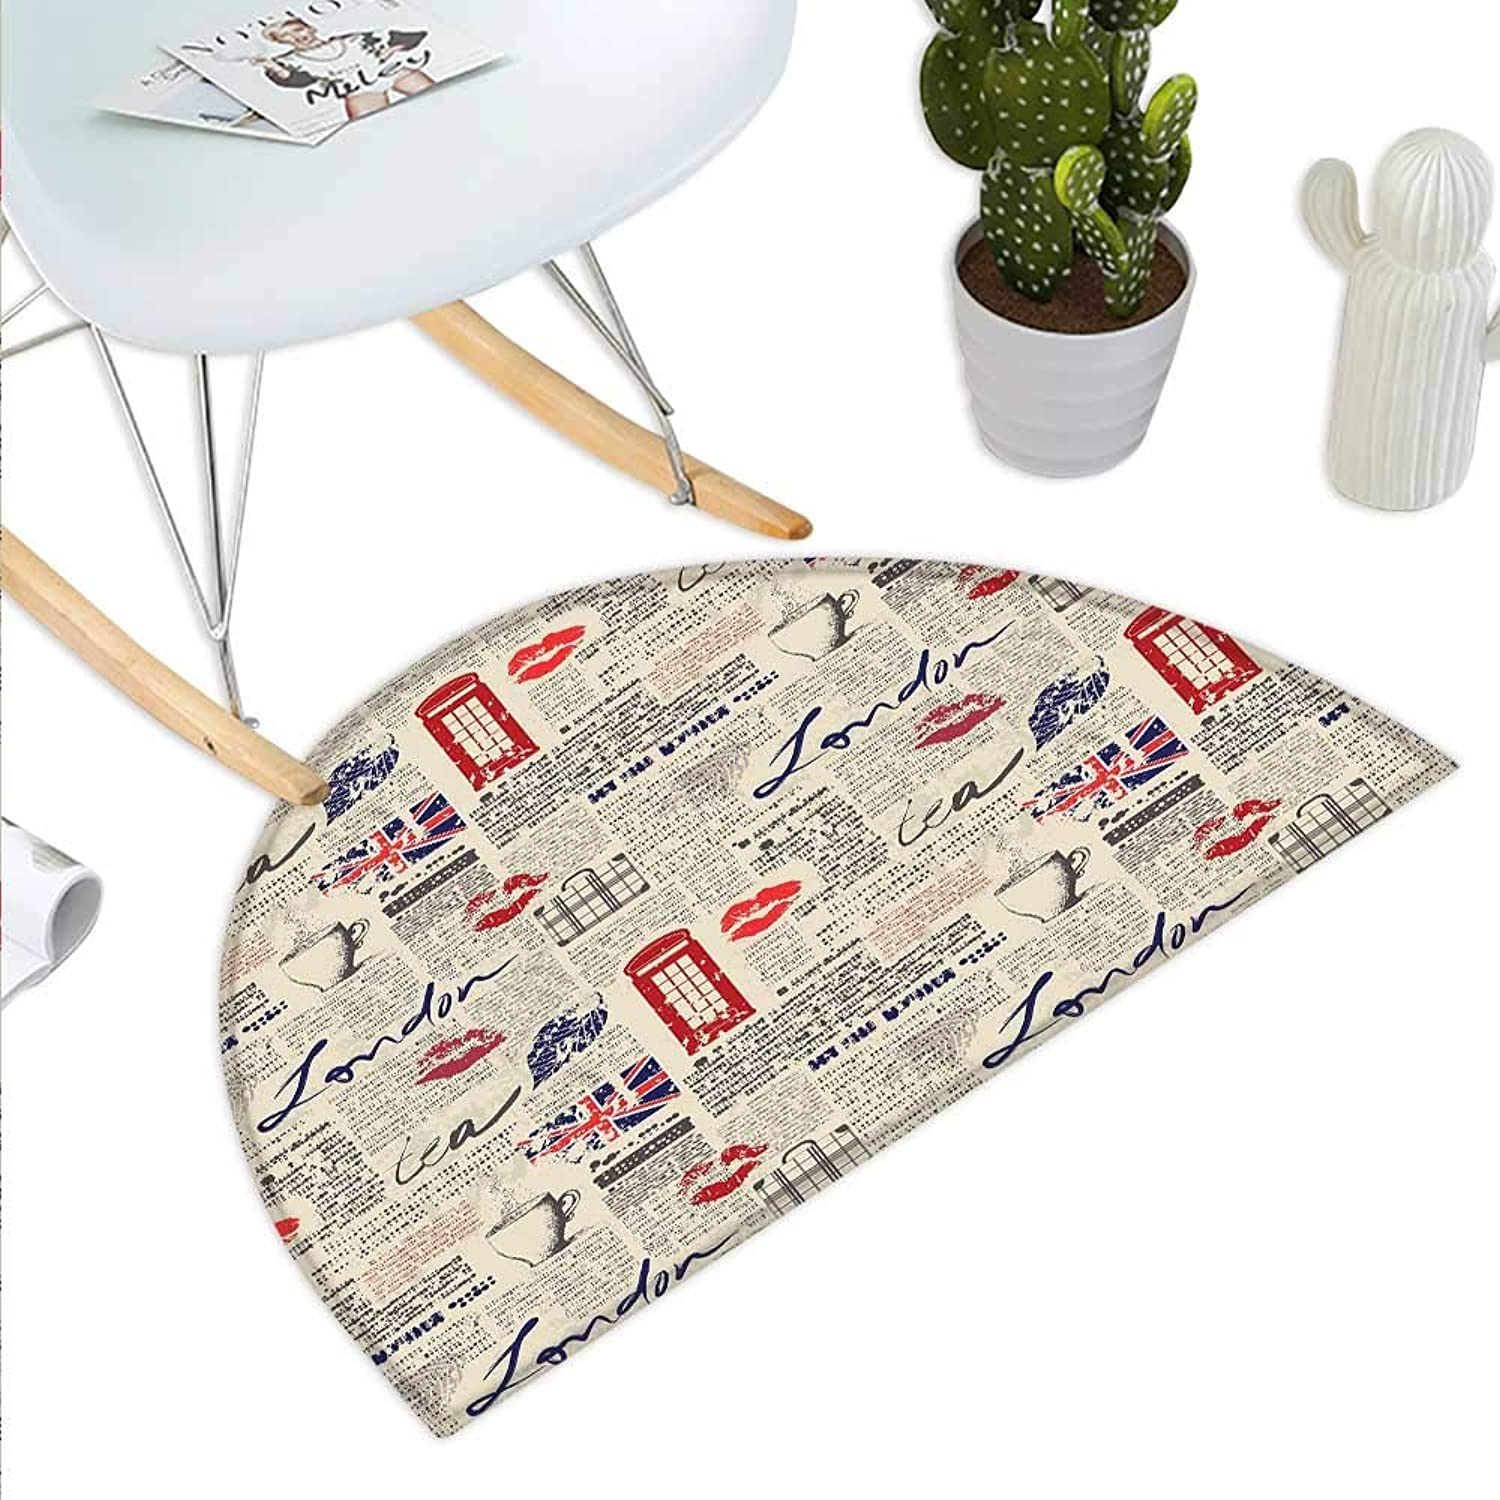 Tea Party Semicircle Doormat London Newspaper Inspired Background with Grunge Elements Kiss Marks Halfmoon doormats H 43.3  xD 64.9  Beige Navy bluee Red